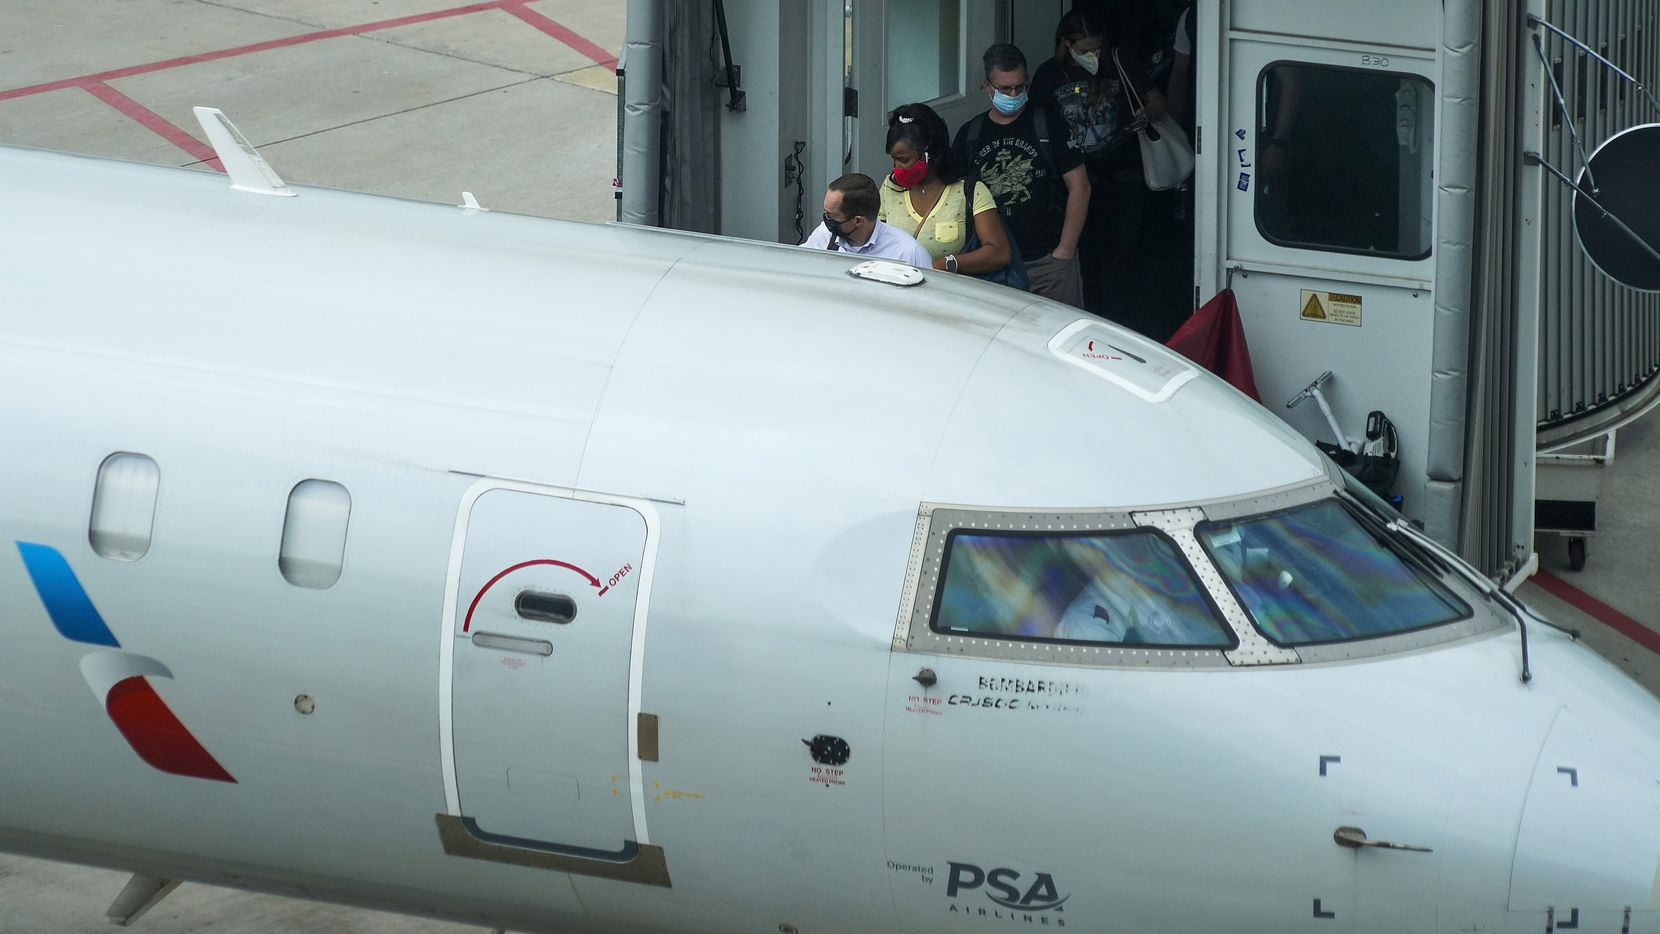 Passengers wearing face coverings board American Eagle flight at Terminal B at DFW International Airport.